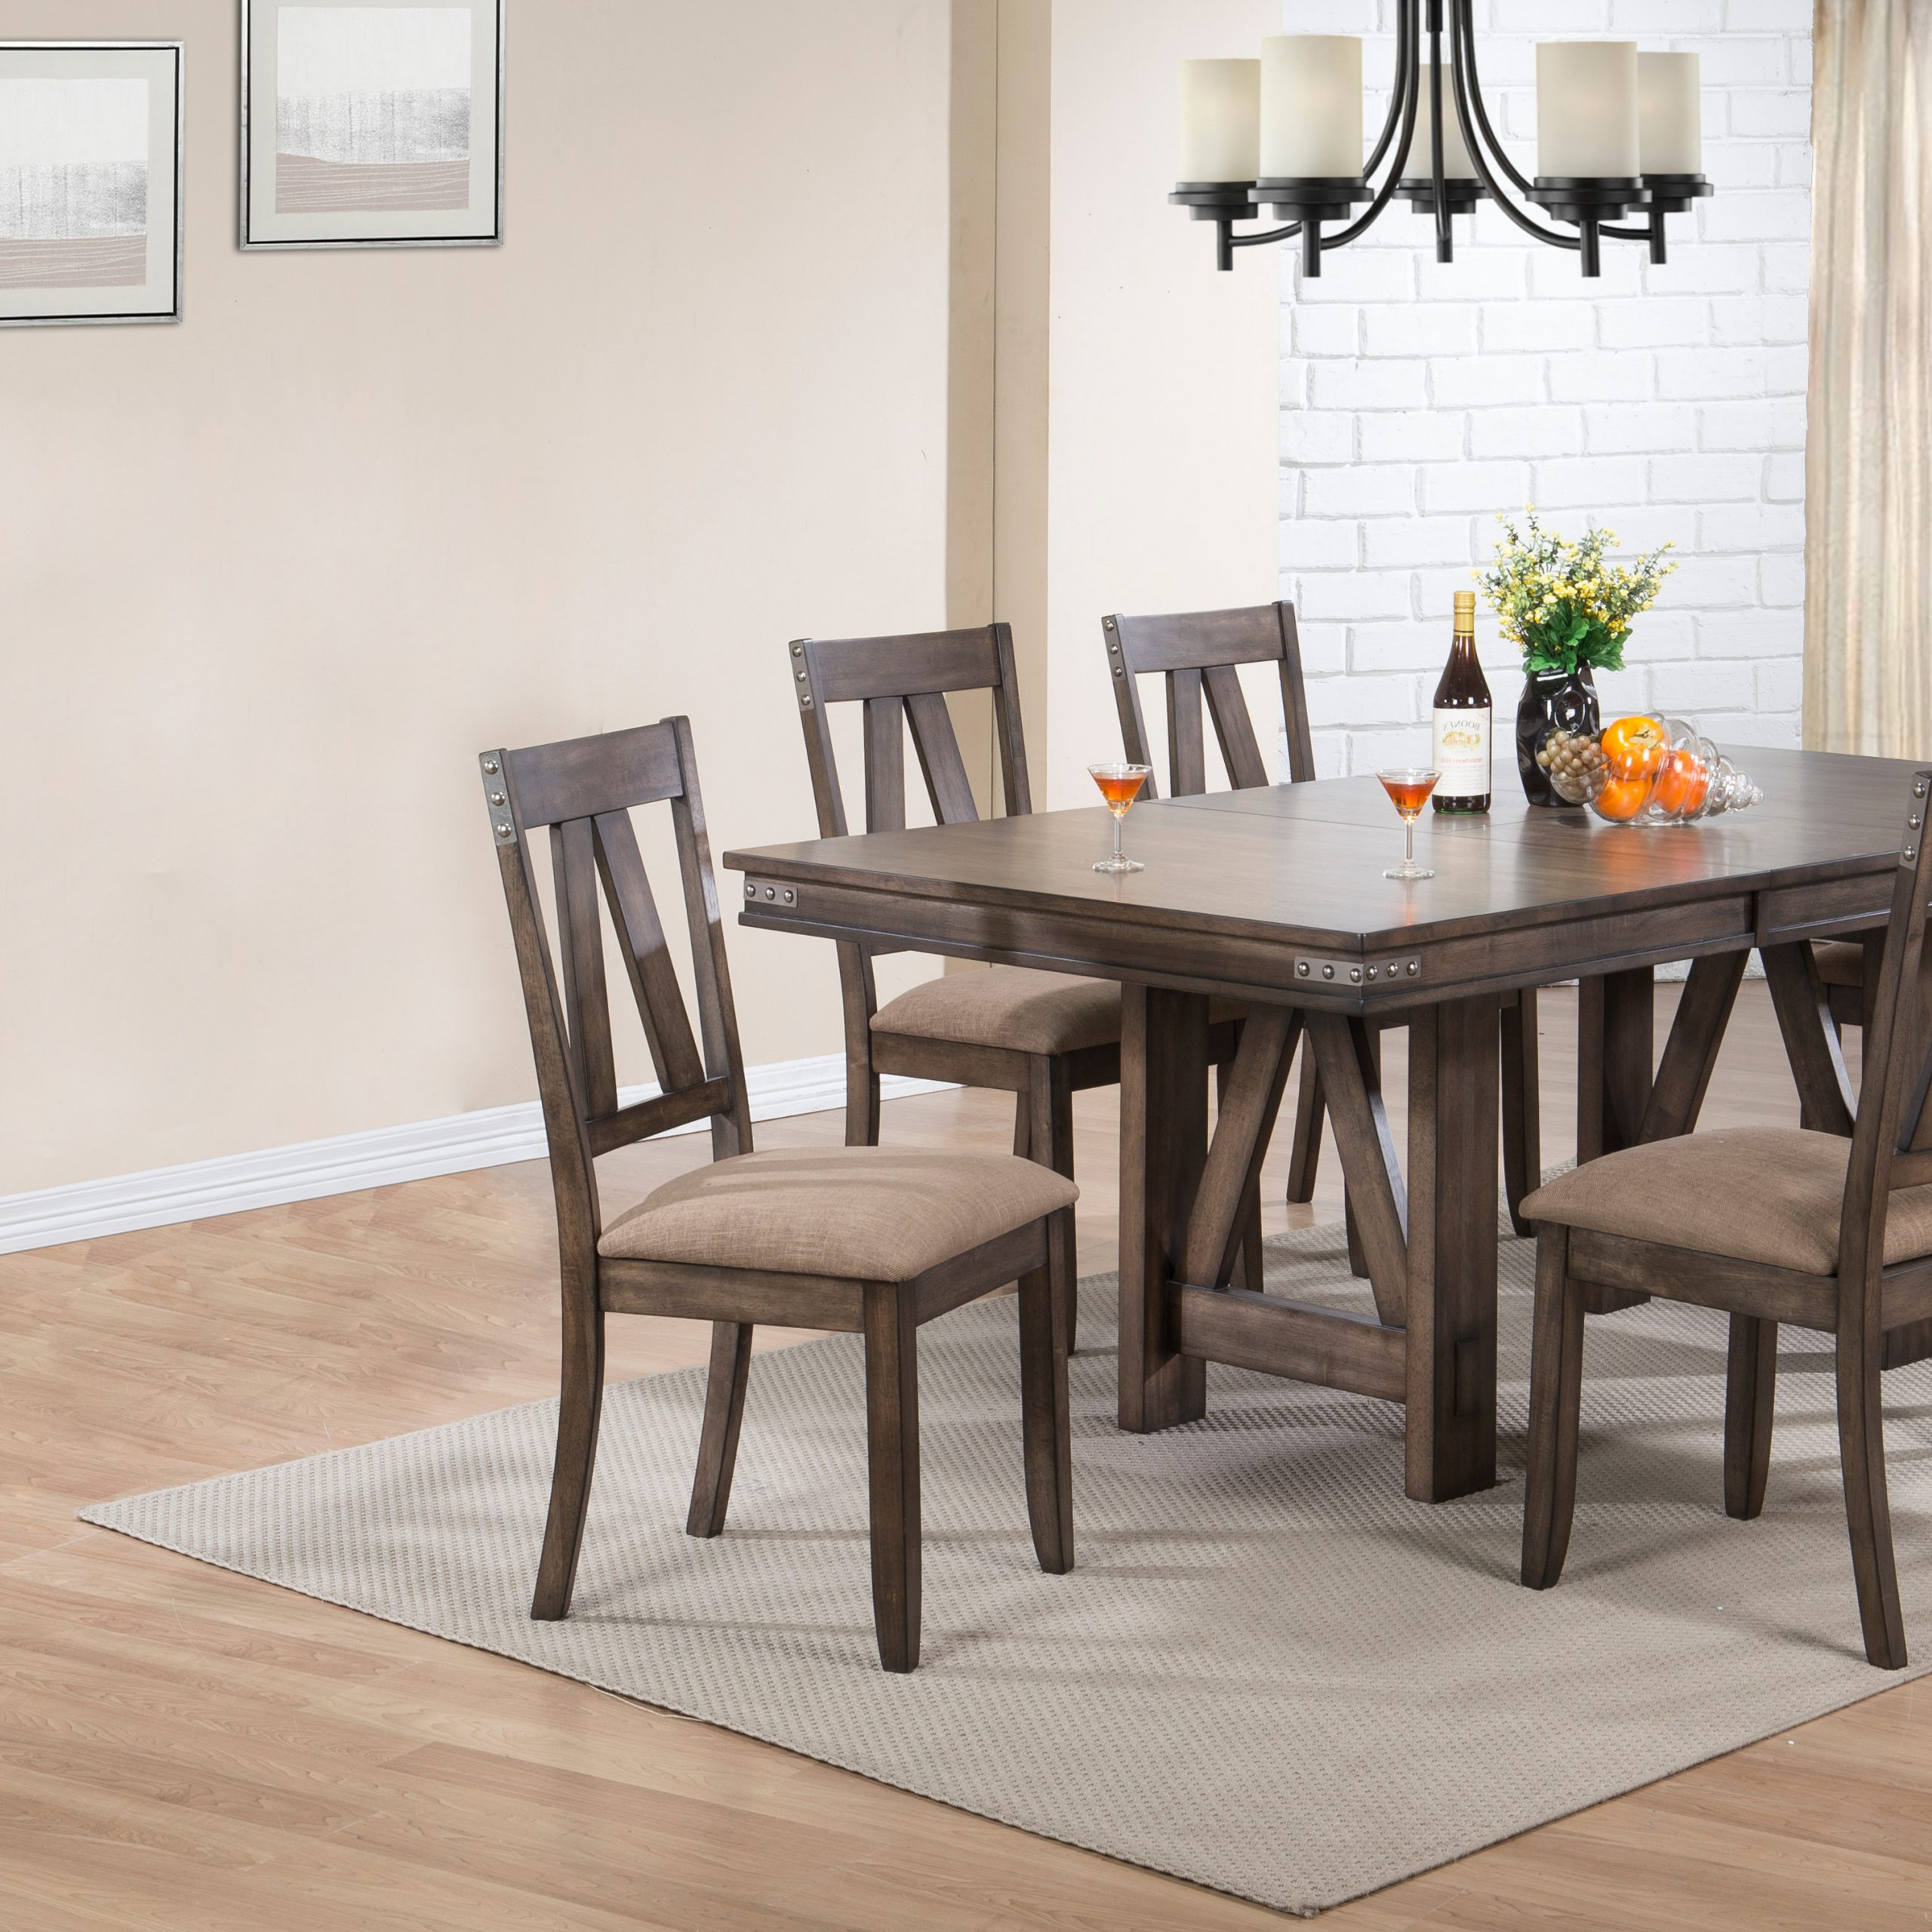 Nets 7 Piece Formal Dining Room Set, Brown Wood Throughout Best And Newest Tudor City 28'' Dining Tables (View 14 of 15)